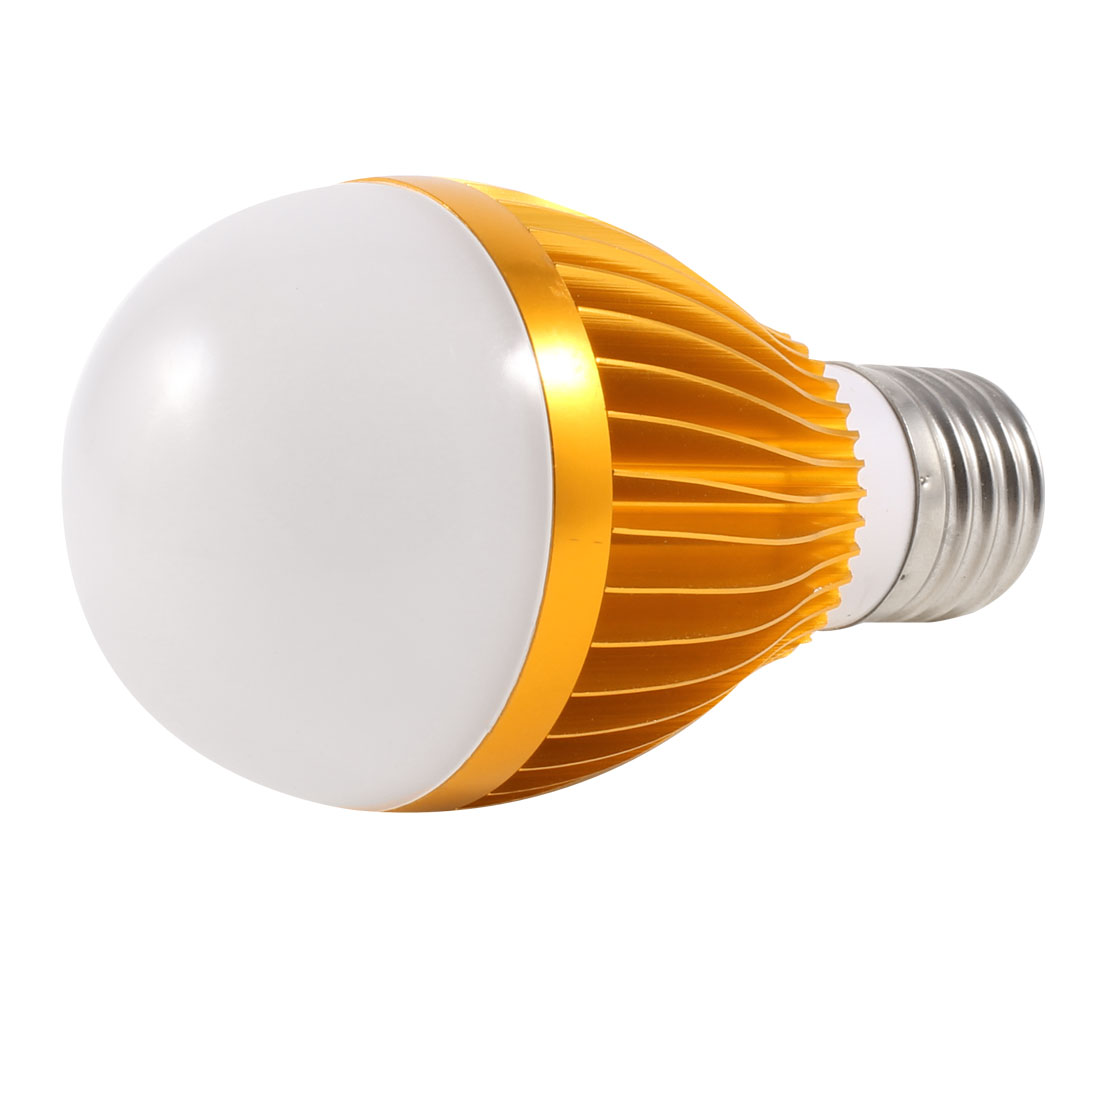 E27 Screw Base Energy Saving White LED Ball Bulb Lamp Light AC 220V 5W